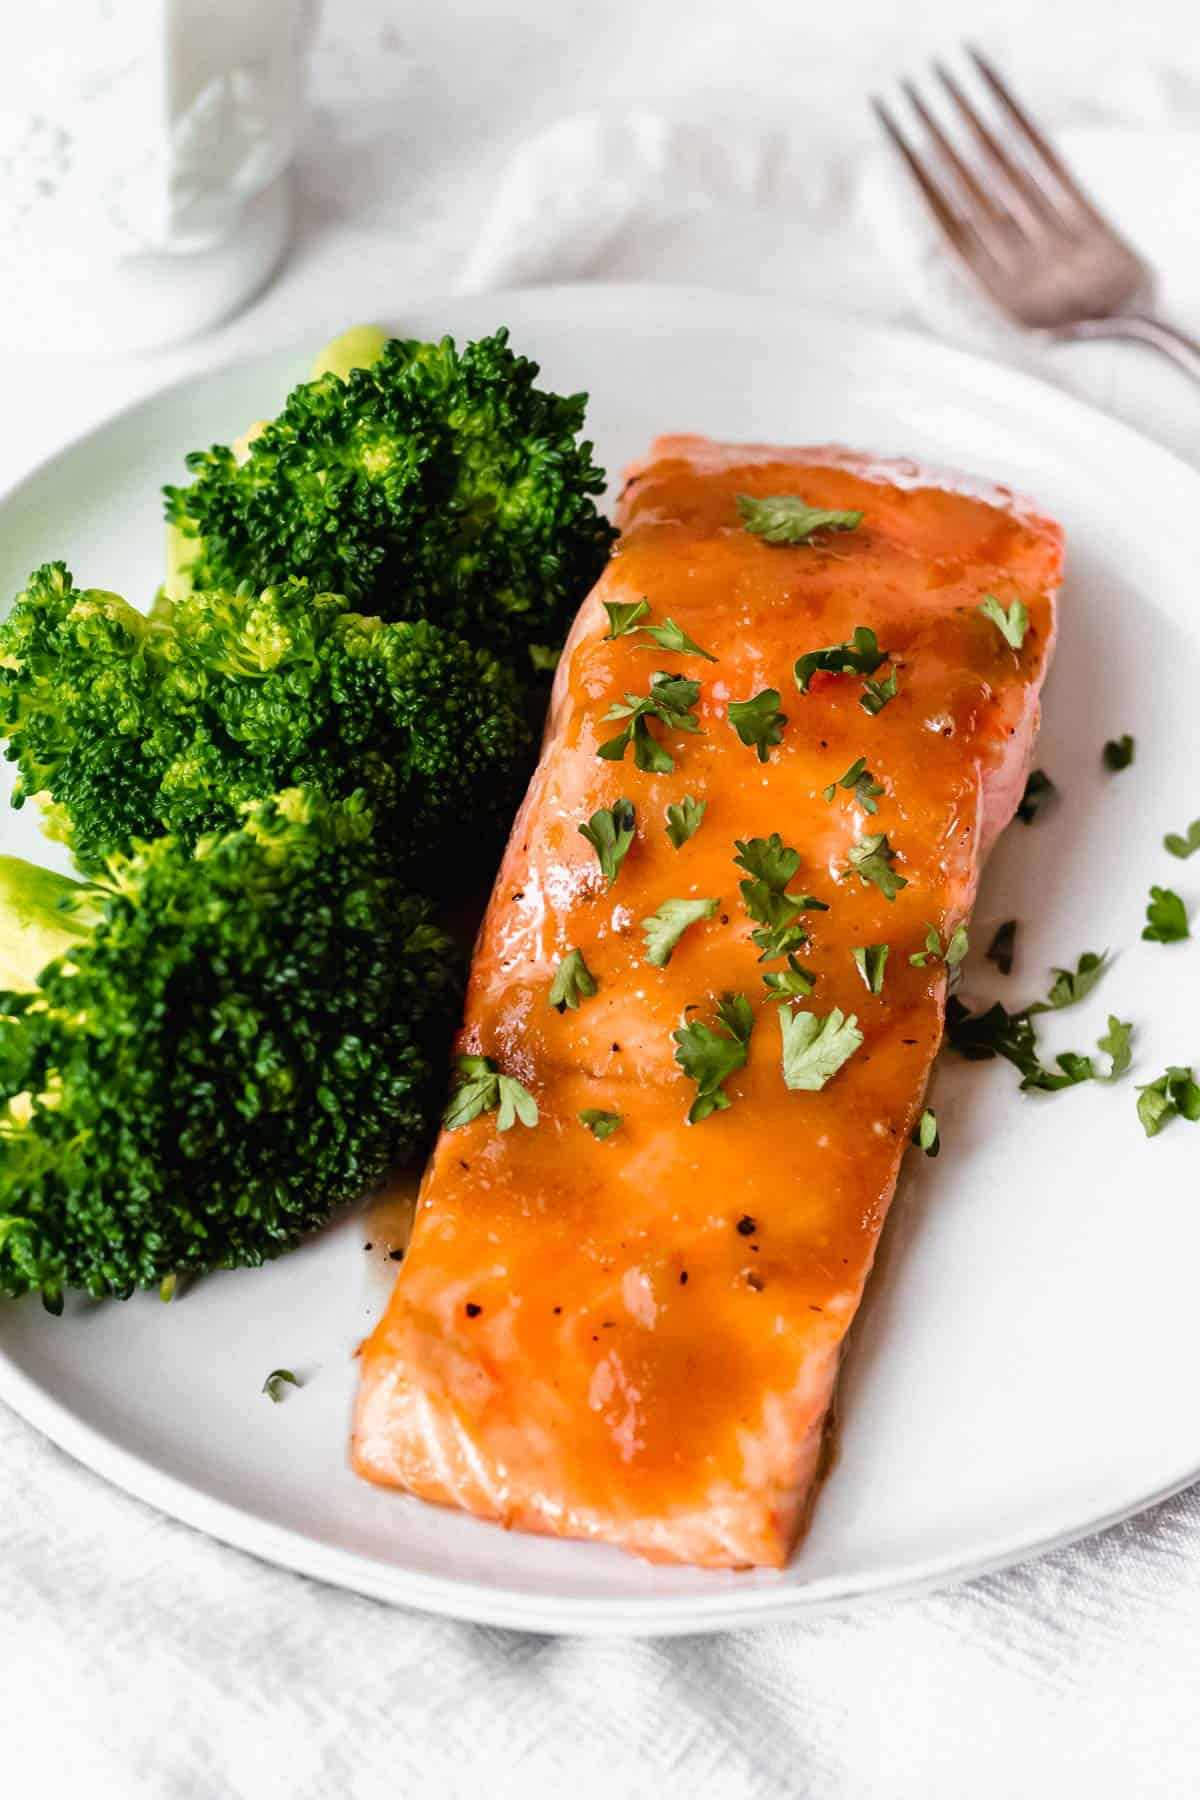 Maple bourbon salmon filet and broccoli on a white plate with a fork and white cup in the background